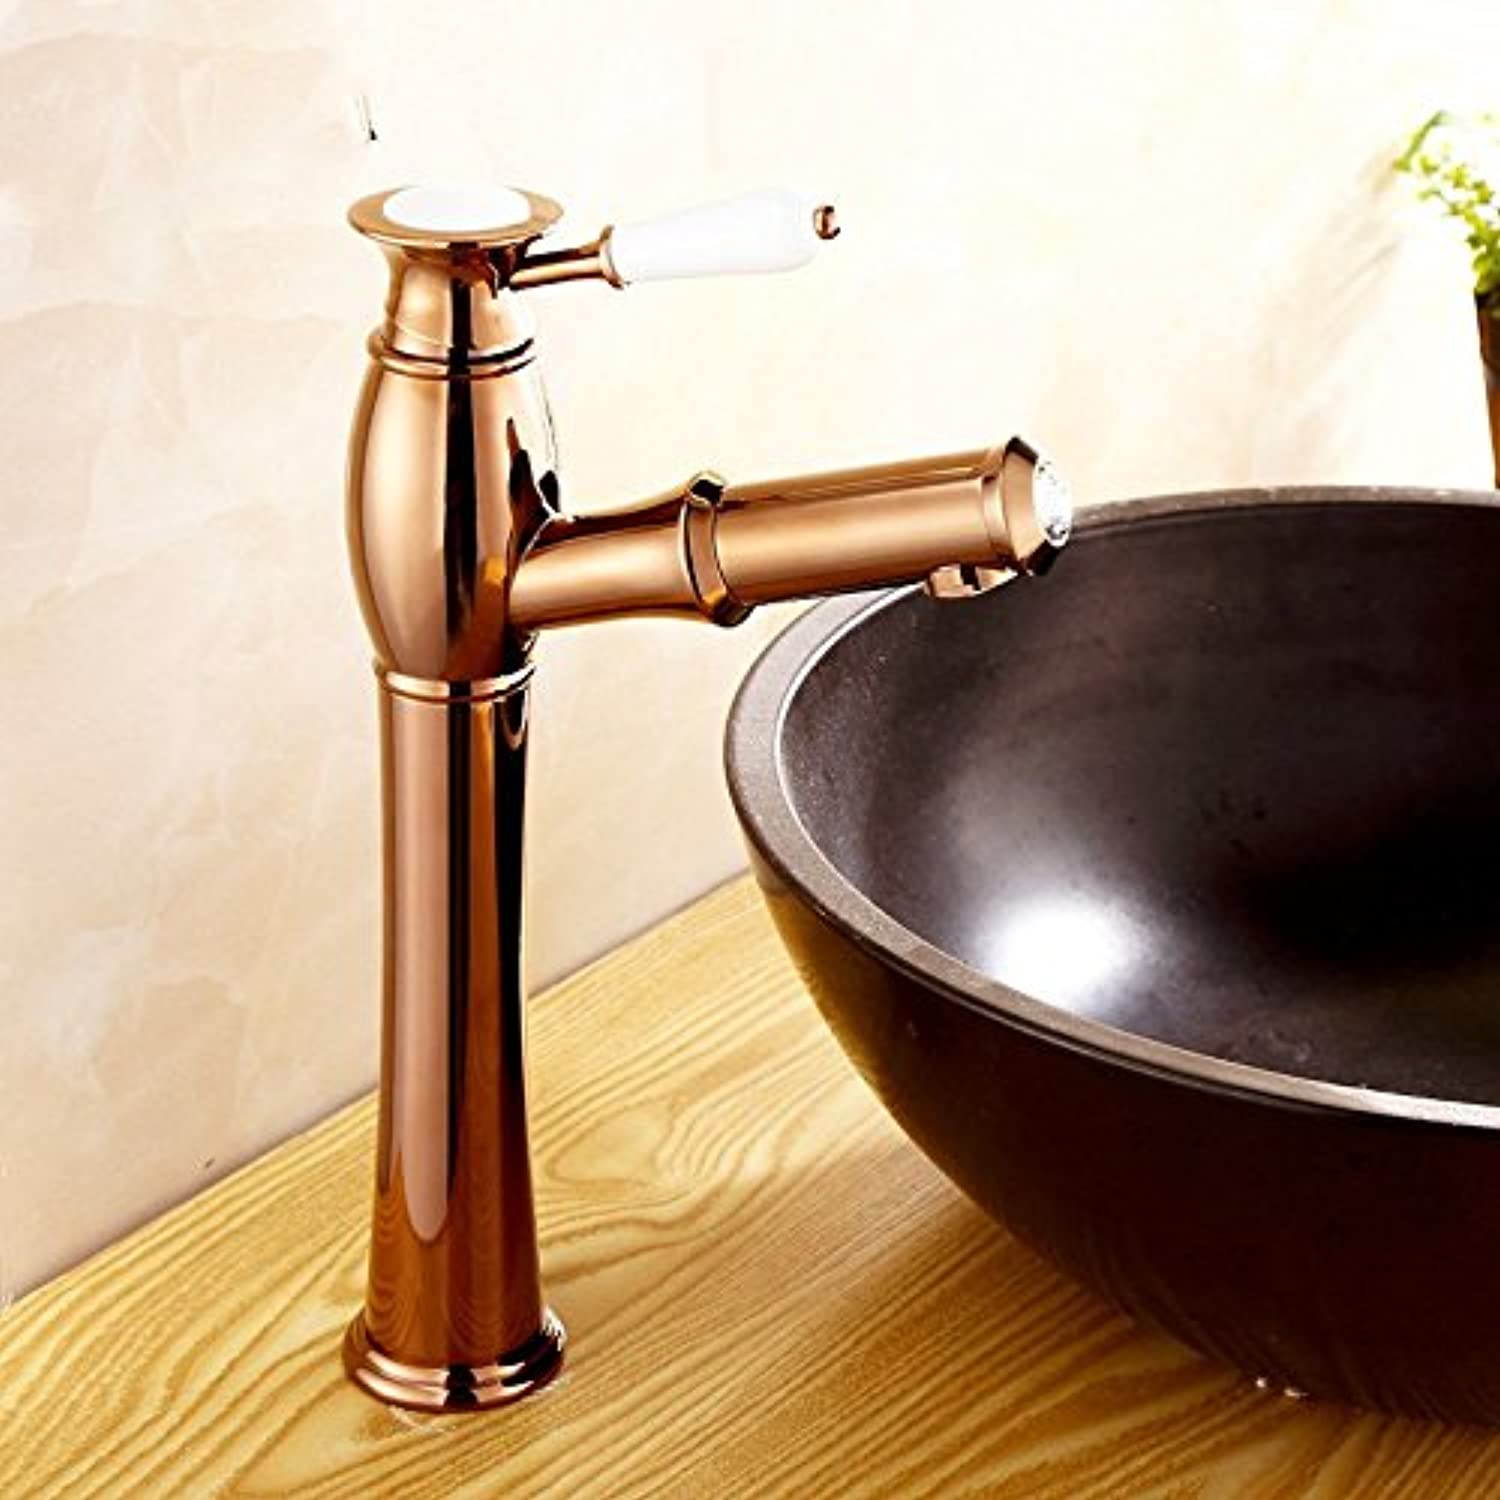 LHbox Basin Mixer Tap Bathroom Sink Faucet Continental gold pull-down faucet hot and cold antique pull-down basin faucet, D.